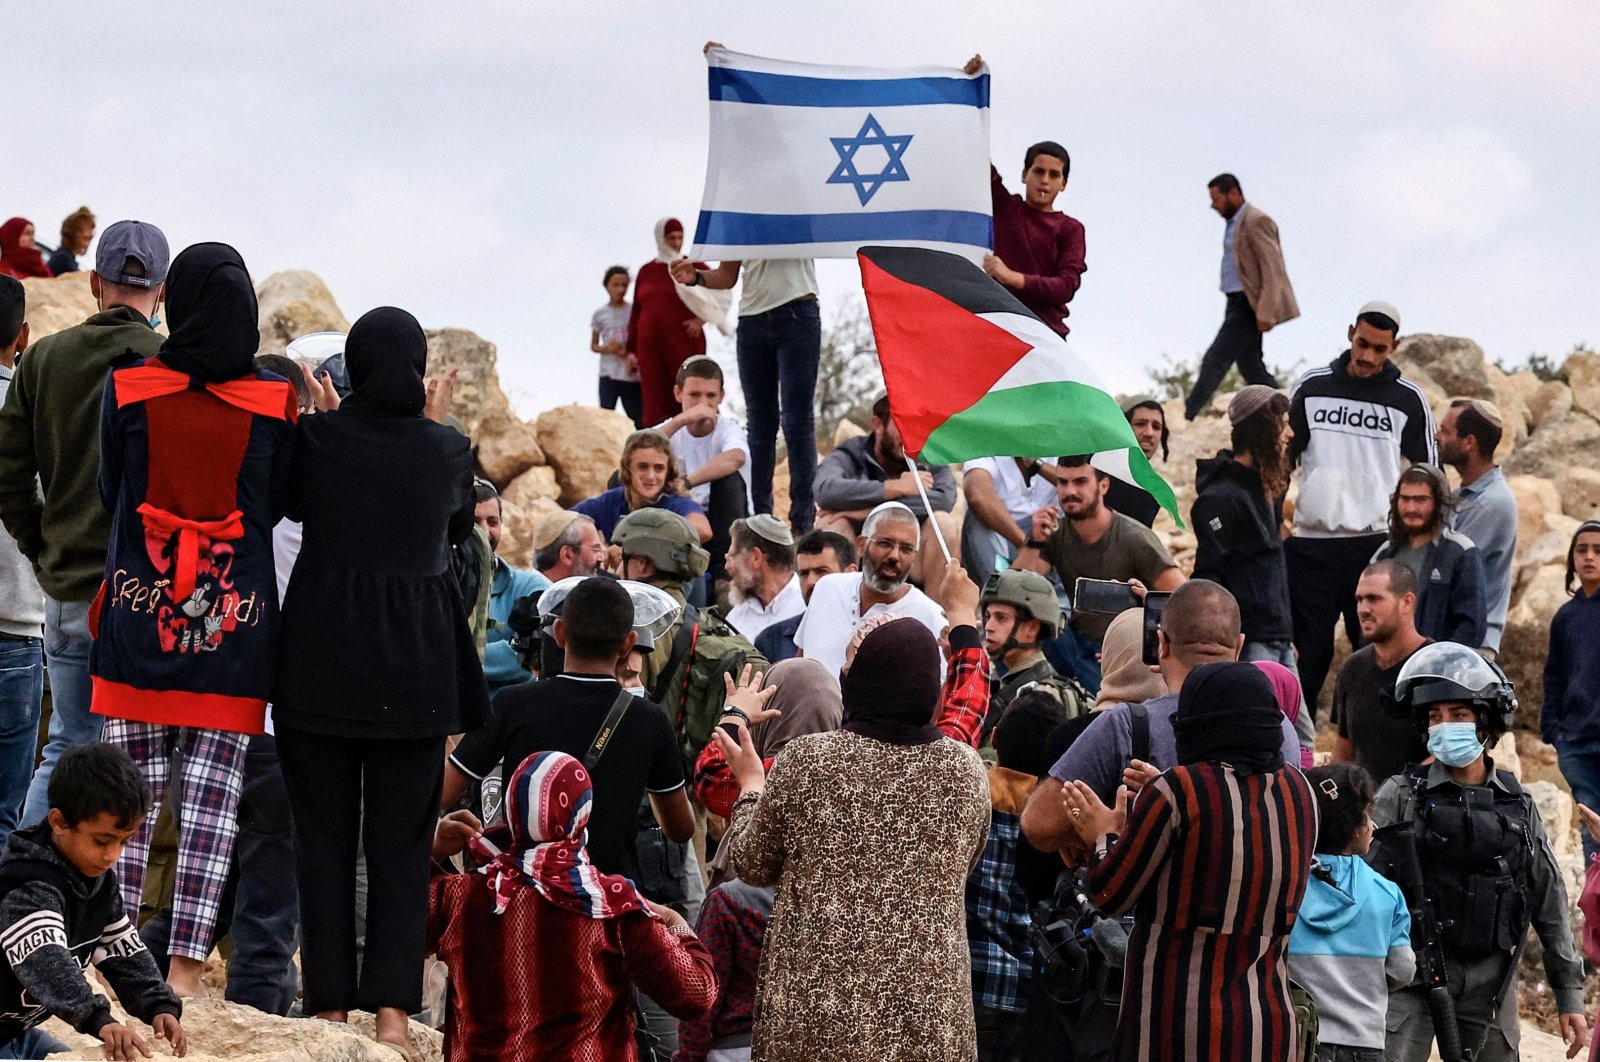 Palestinians from the village of Susya confront Jewish settlers from the settlement of the same name, as both sides raise their national flags, during the visit of representatives of the European Union to the area C (under Israeli administration) of the West Bank, on the outskirts of the village of Yatta, on Sept. 24, 2021. (AFP Photo)